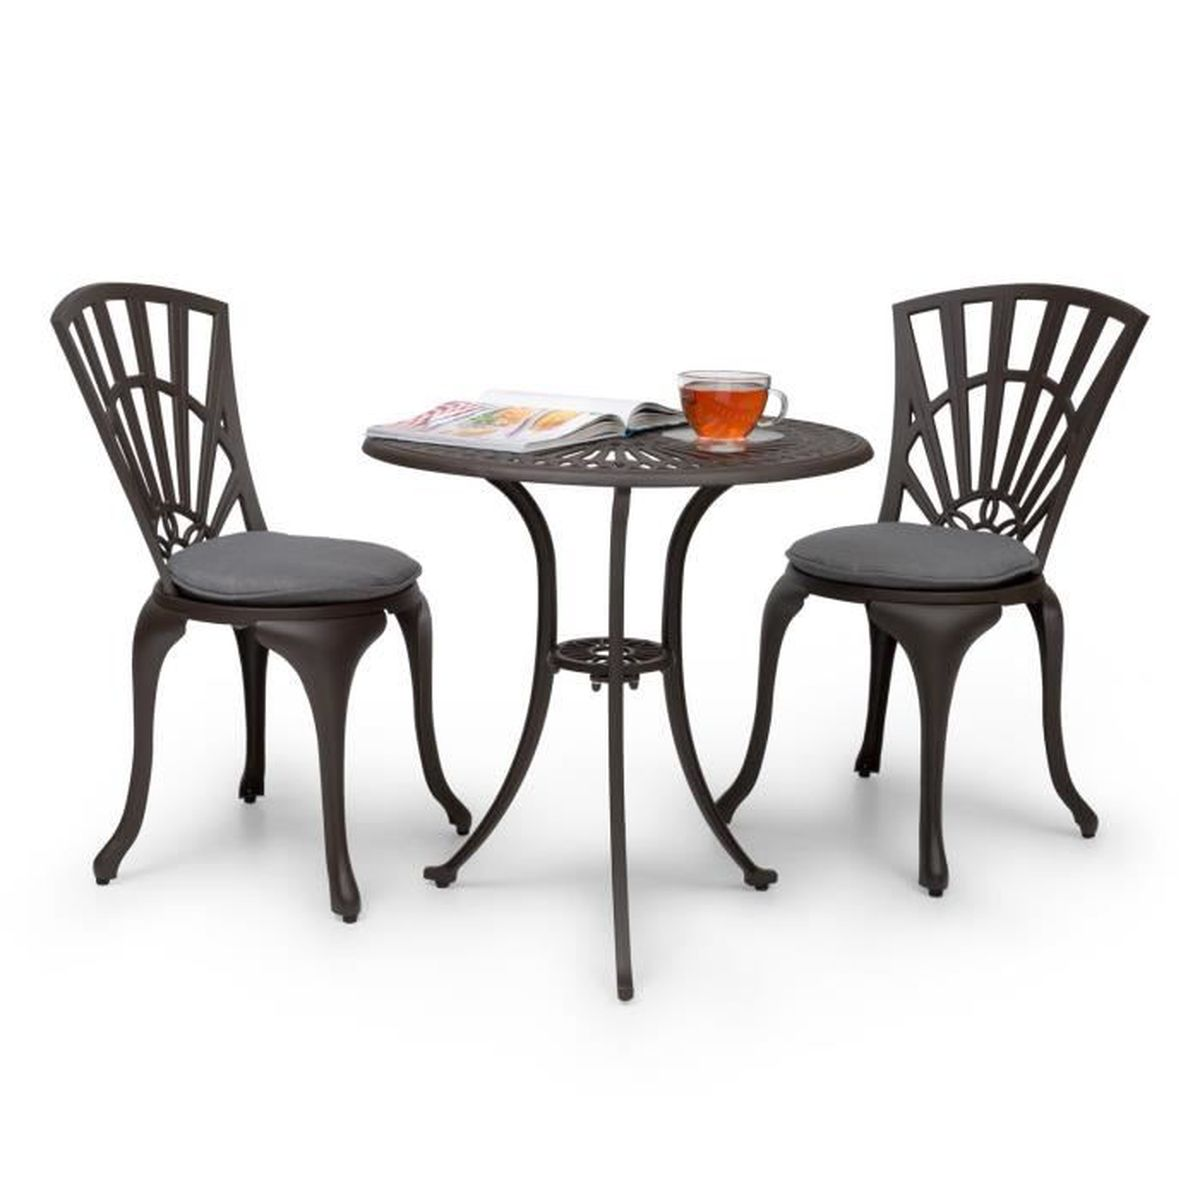 blumfeldt valletta set bistrot table 2 chaises coussins alu moul marron achat vente. Black Bedroom Furniture Sets. Home Design Ideas